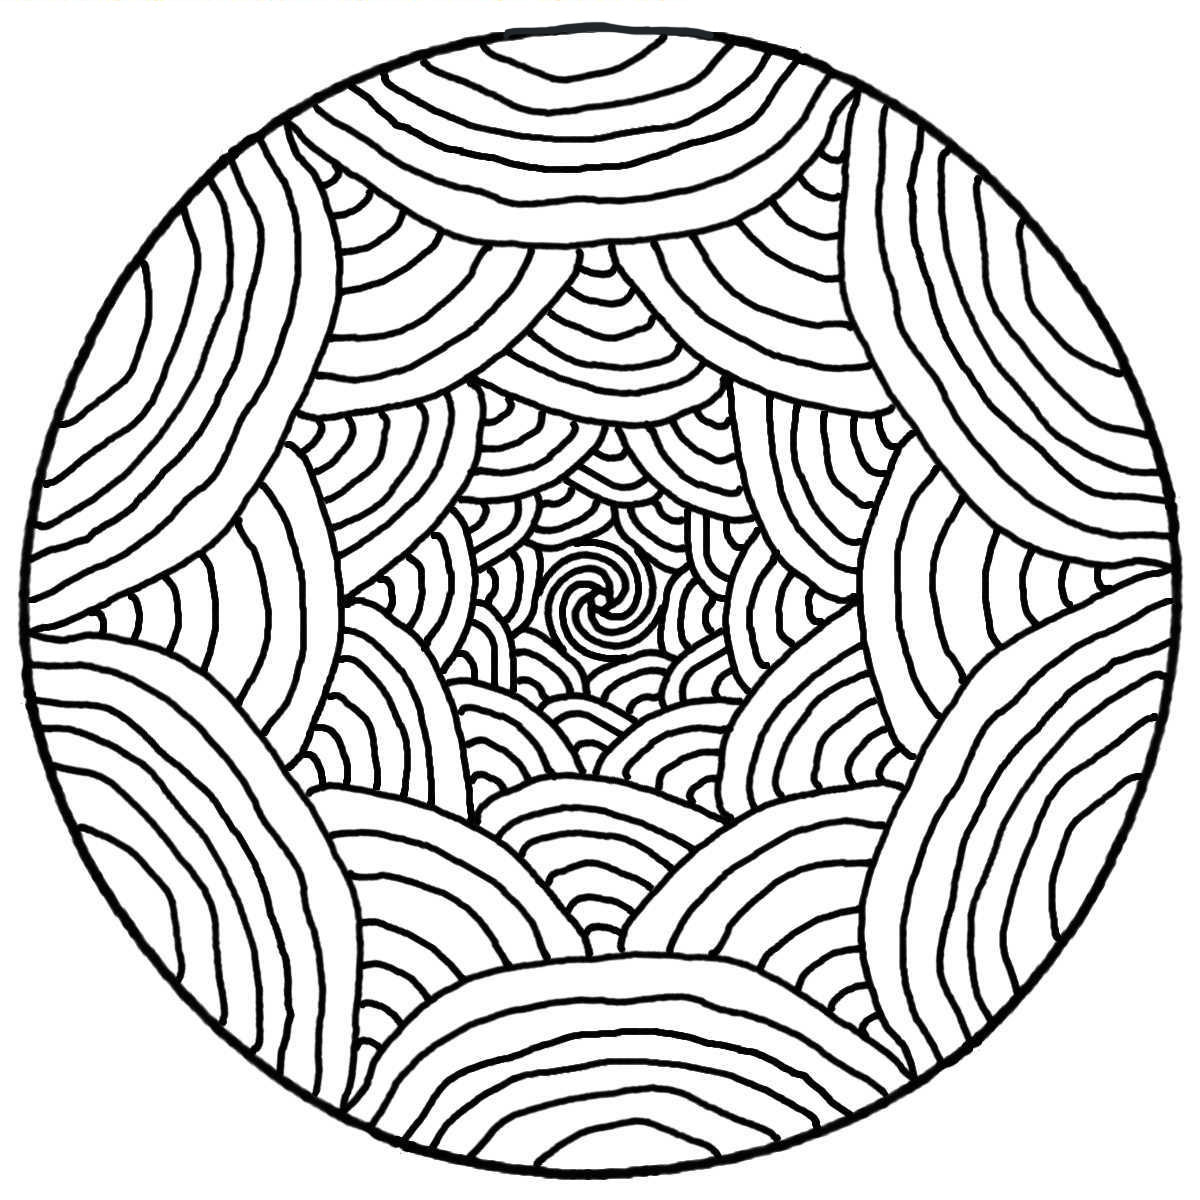 A Mandala guaranteed 100% Zen, for a moment of pure relaxation. Do whatever it takes to get rid of any distractions that may interfere with your coloring.